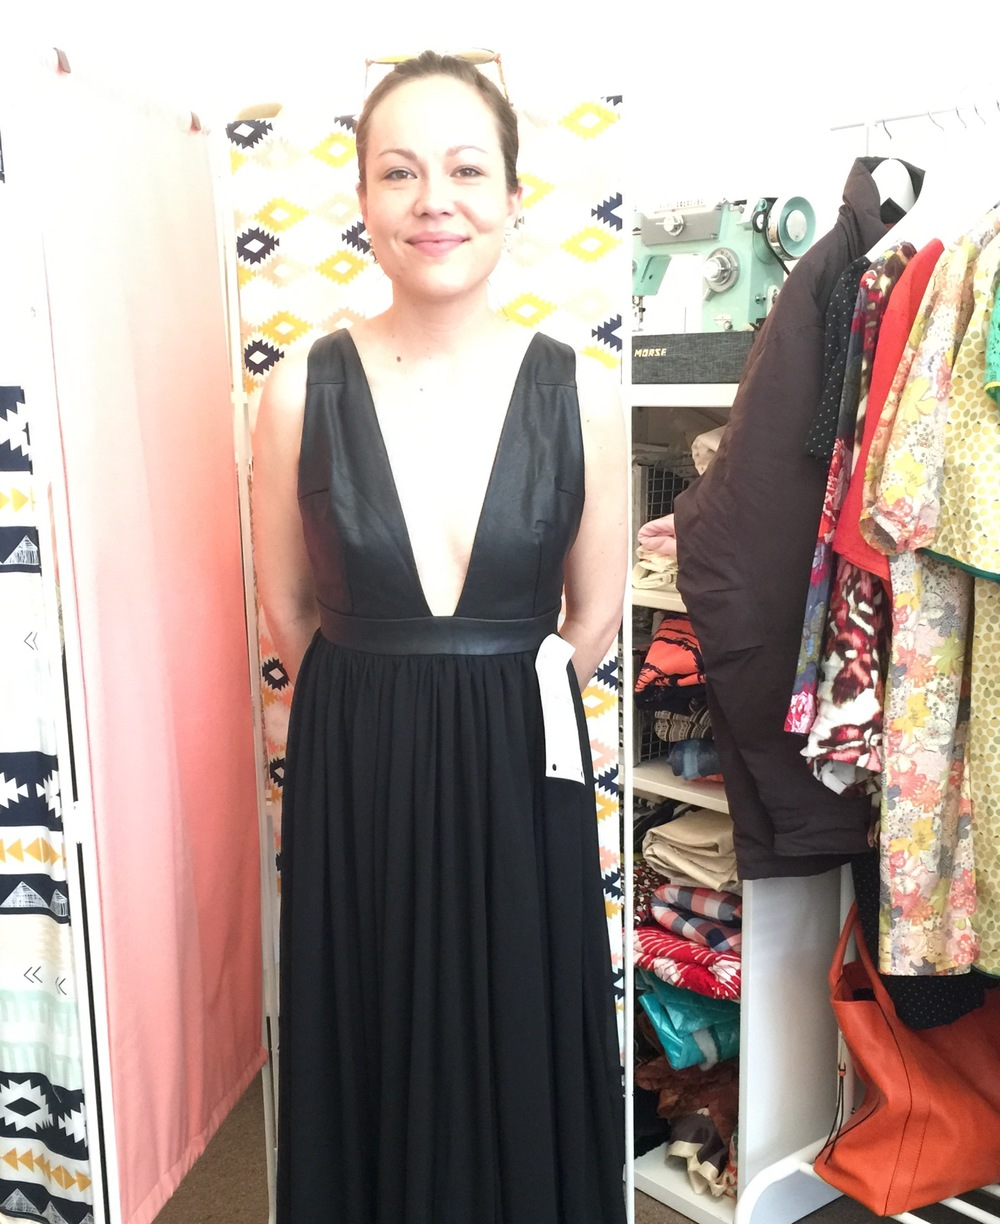 Happy client Rudy in her gorgeous dress altered to fit perfectly.